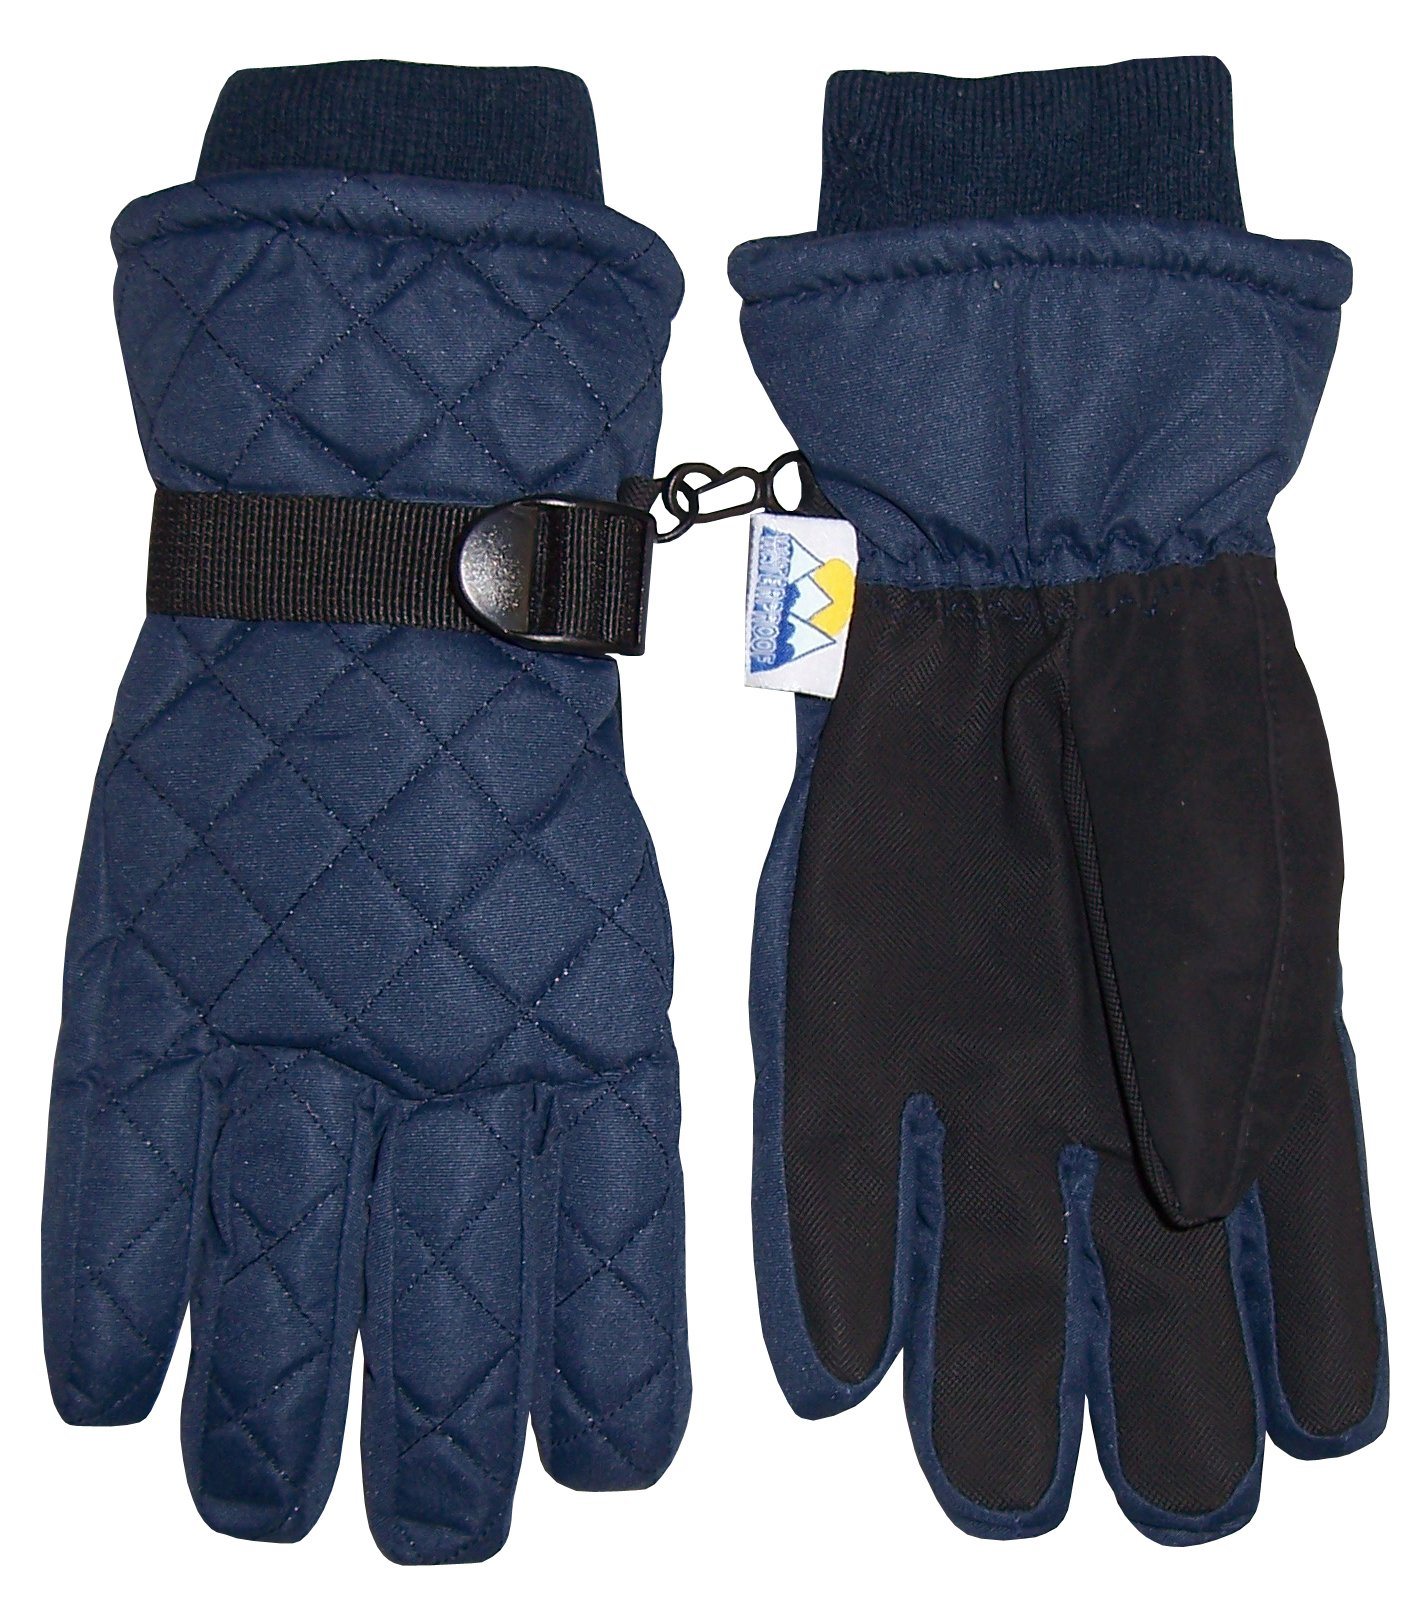 NICE CAPS Kids Boys Girls Winter Thinsulate Waterproof Quilted Ski Snow Gloves - Fits Childrens Childs Youth Toddlers Sizes